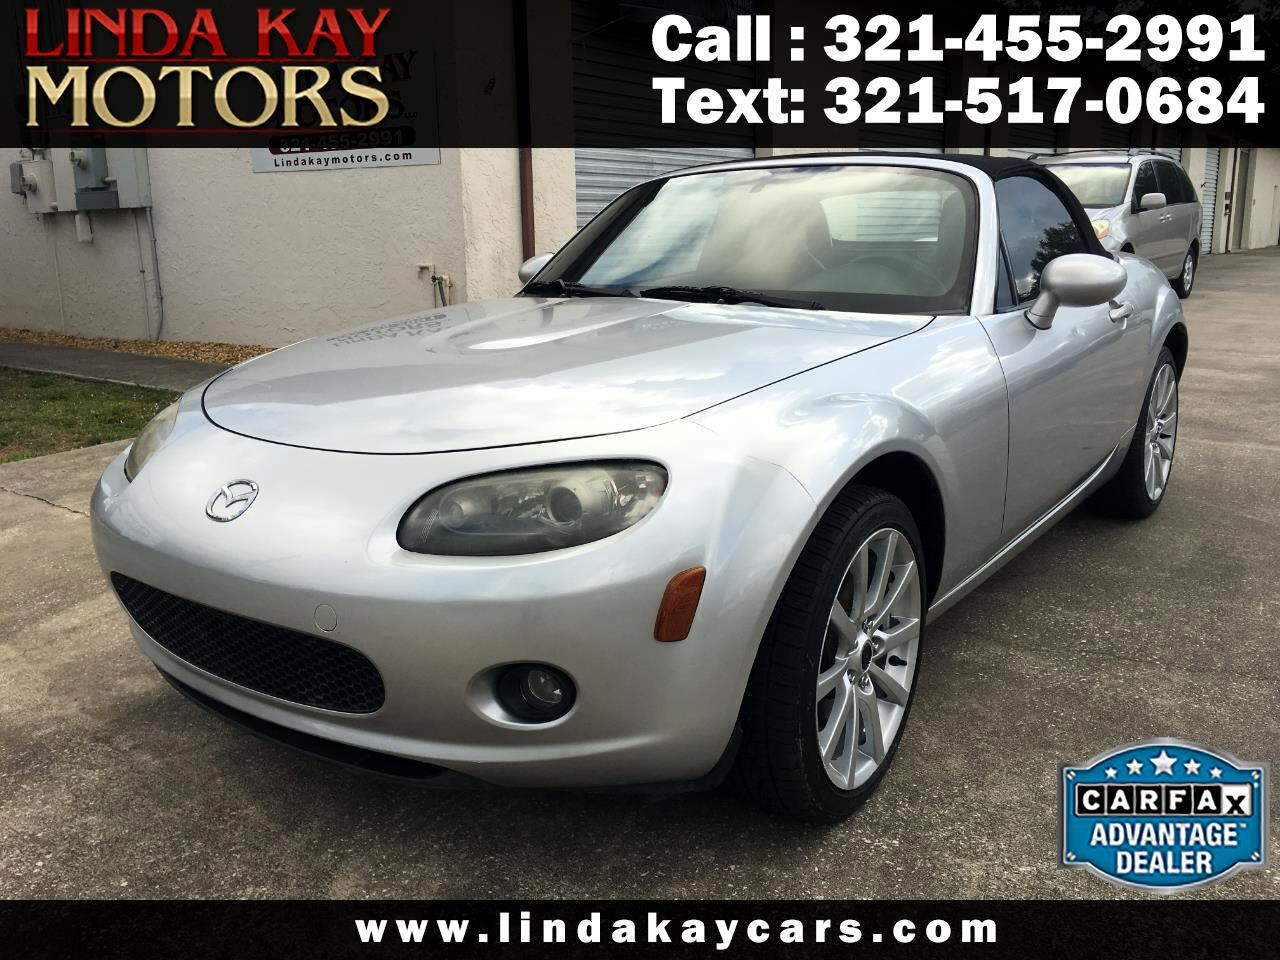 2006 Mazda MX-5 Miata 2dr Conv Grand Touring Manual